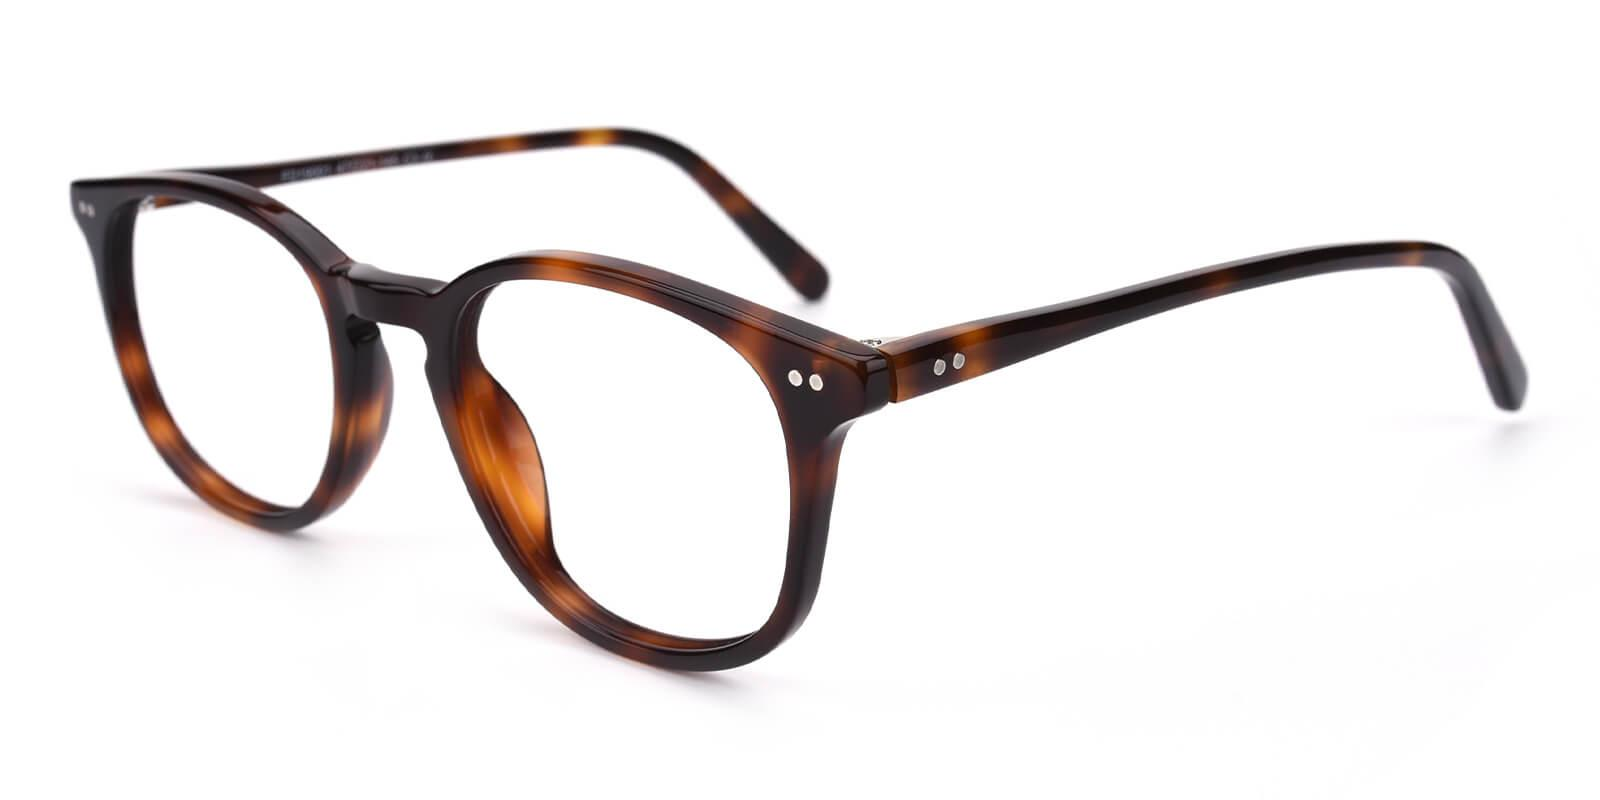 Trendiary-Tortoise-Square-Acetate-Eyeglasses-additional1